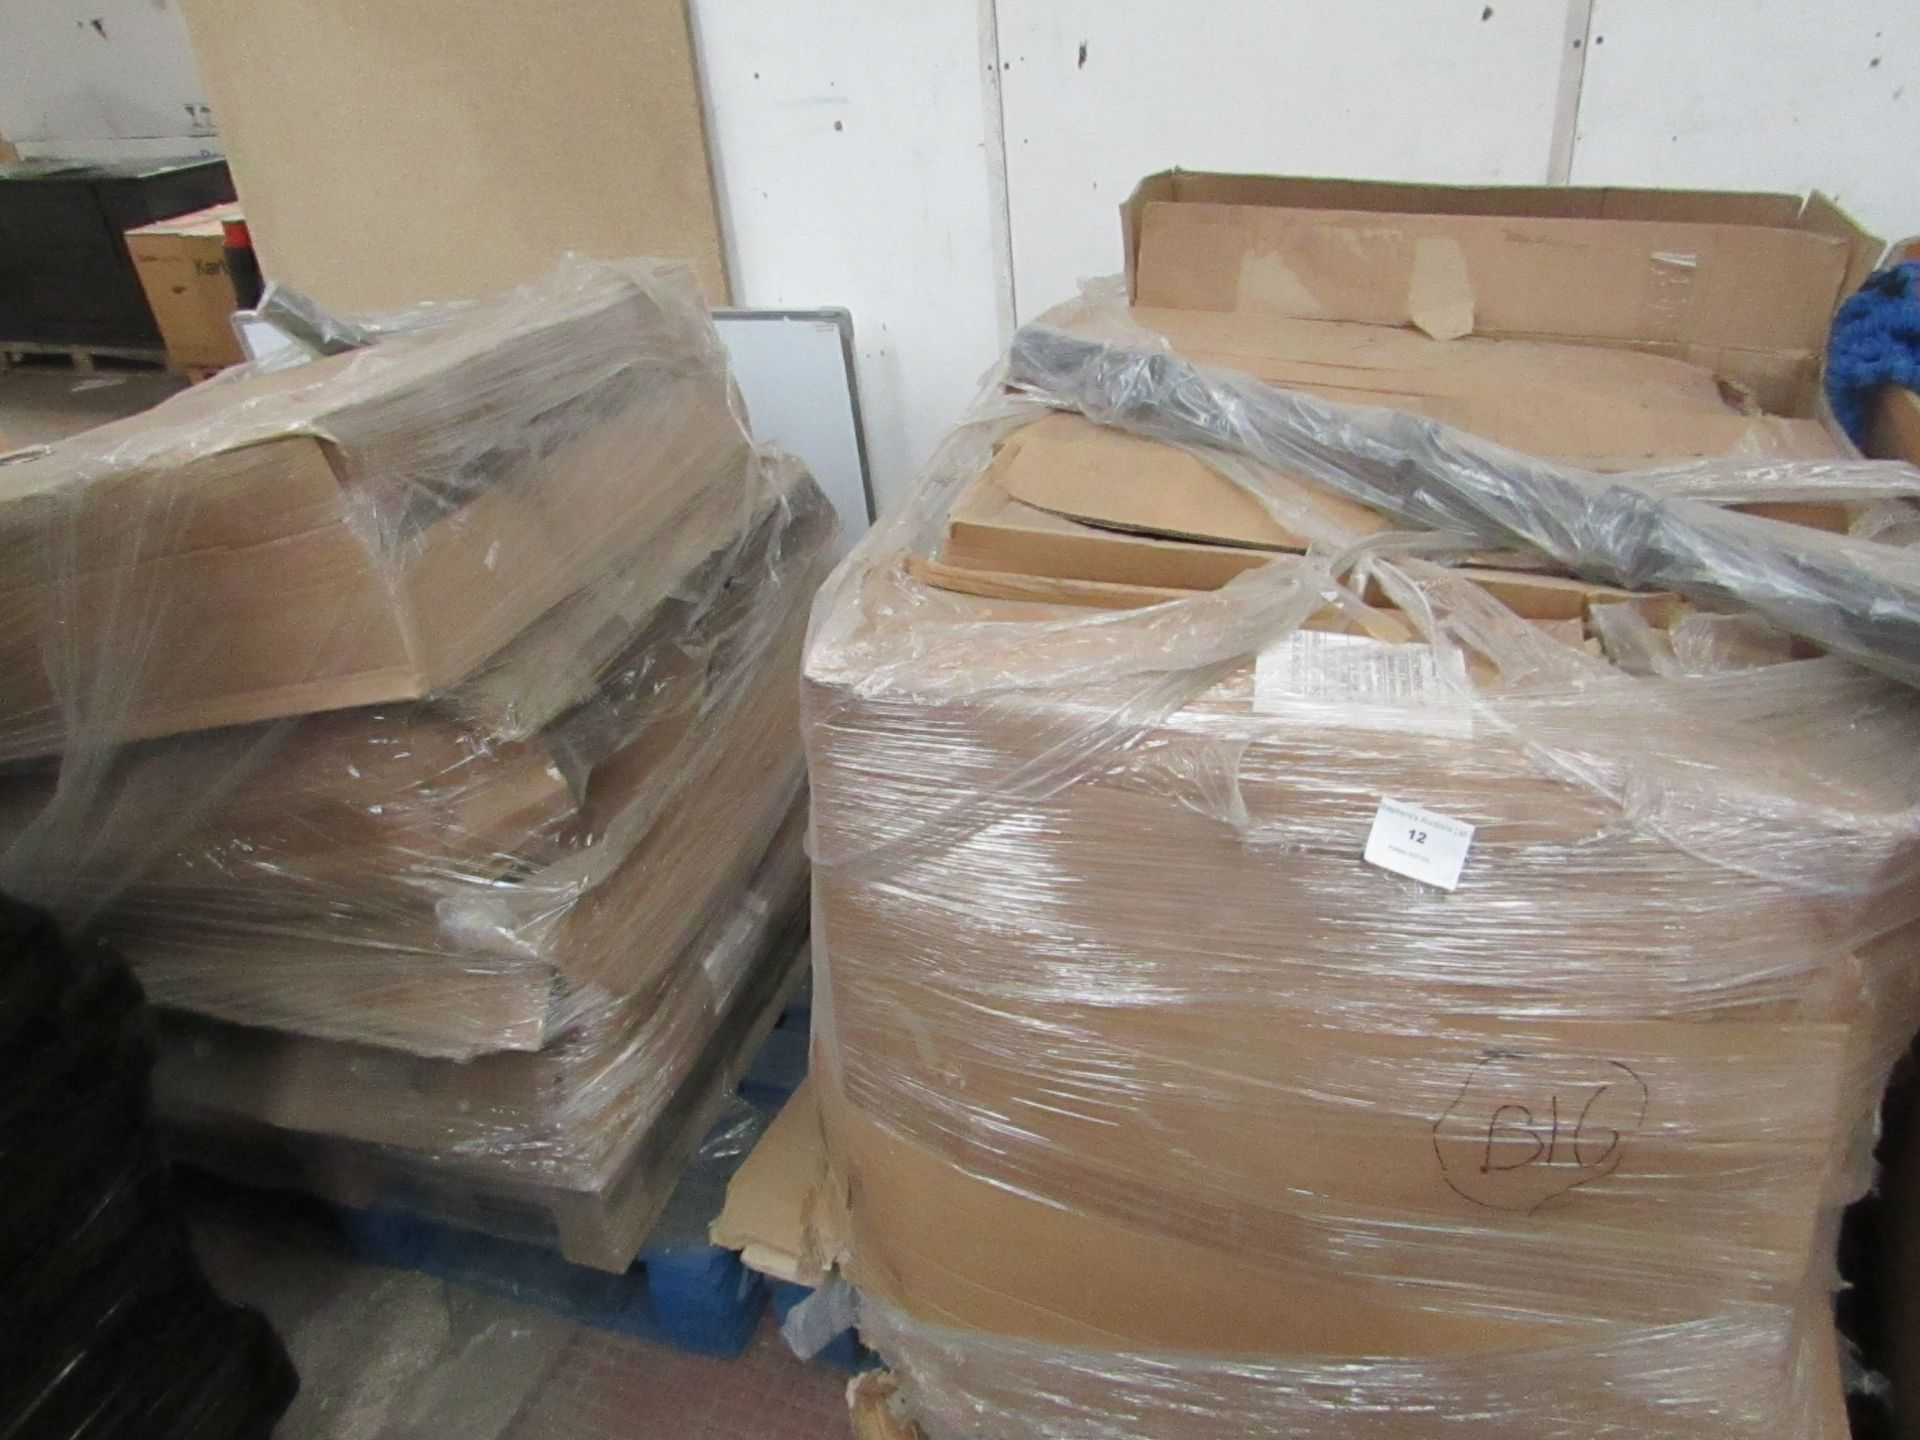 2x palleet so of Commerical Plant pot display stands, unused but the boxes are damaged and we